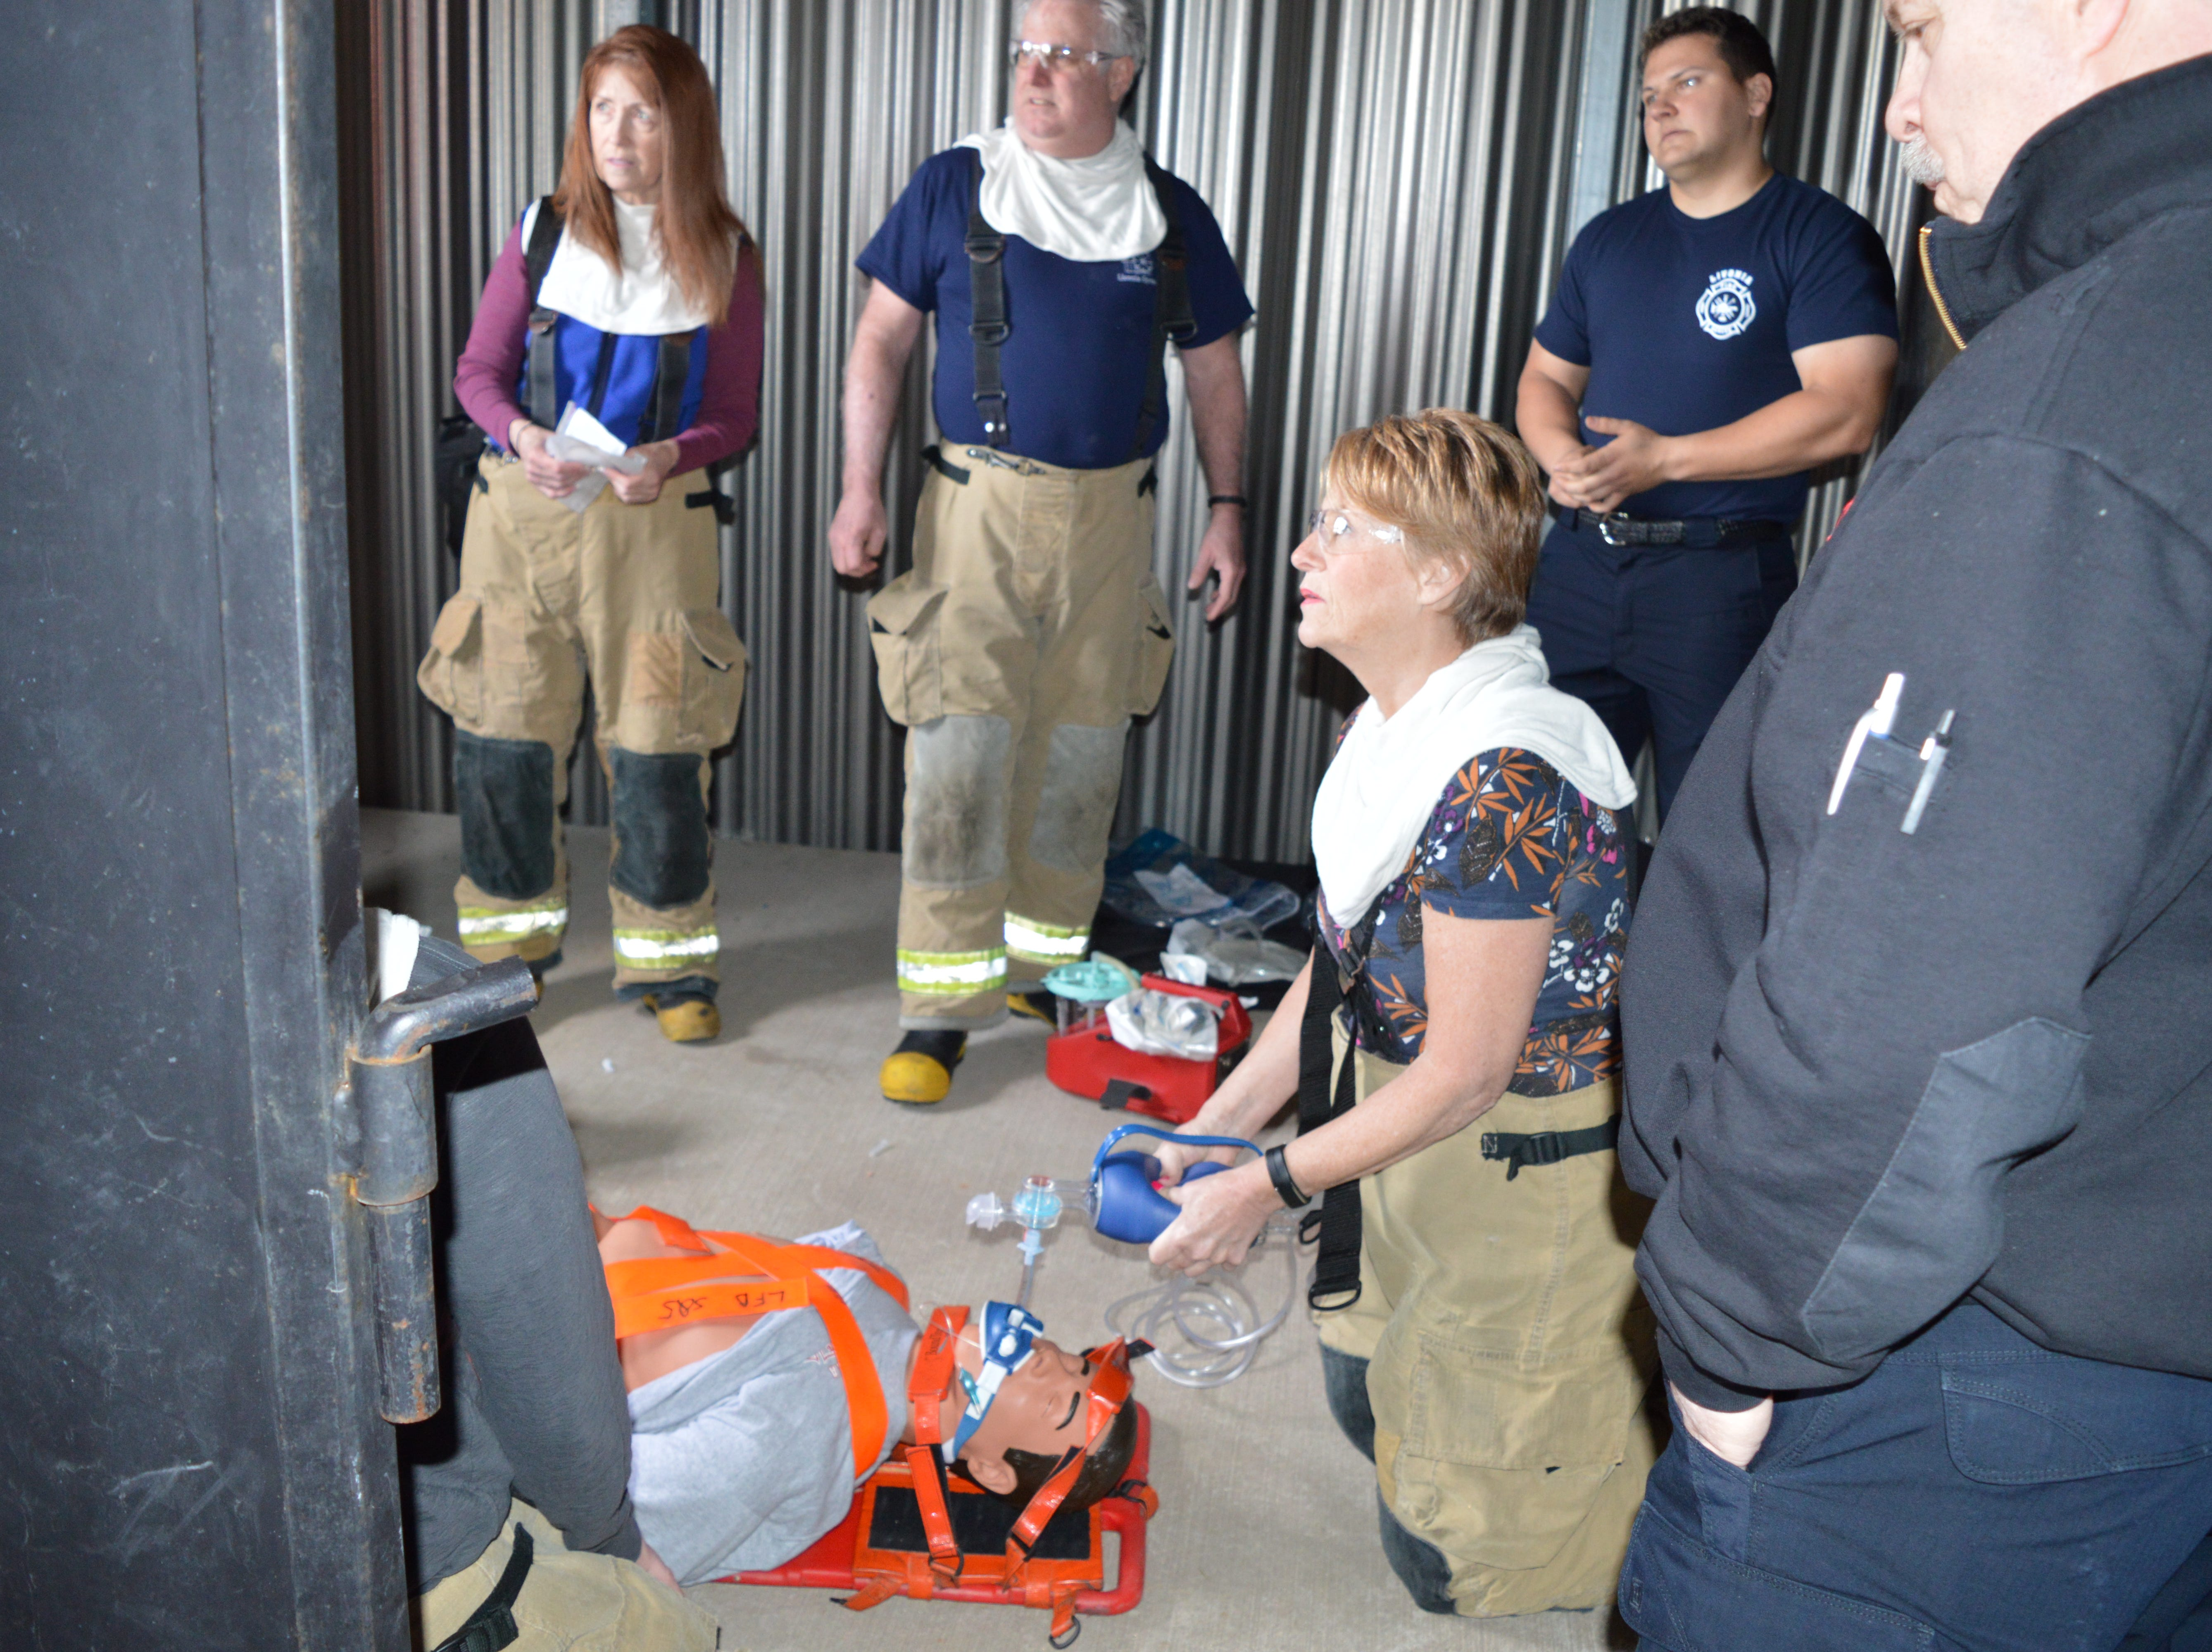 Denise Maier, Livonia's human resources director, participates in a Fire Ops 101 drill while listening to one of her local firefighters on Saturday, May 4, 2019.